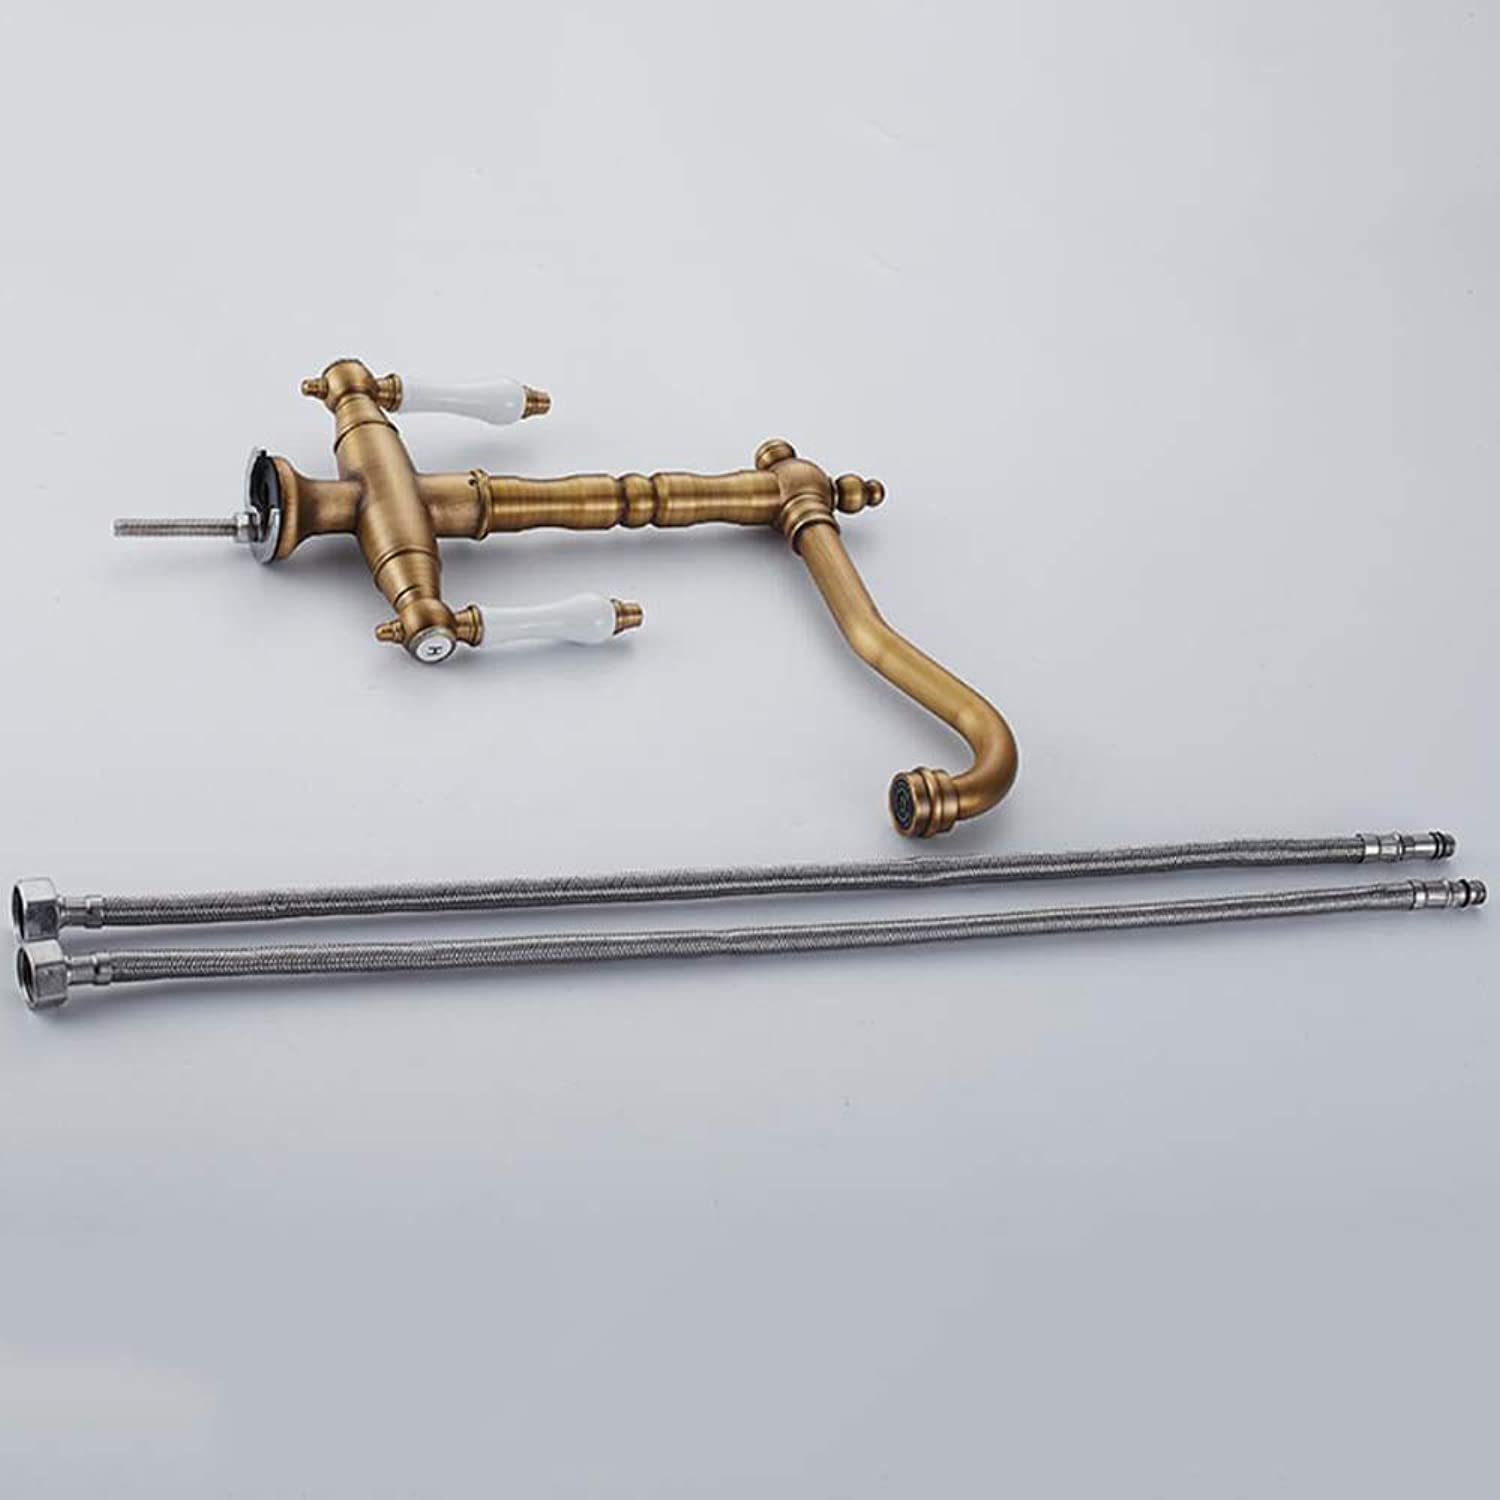 Daxiong Antique Brass Kitchen Tap 360° Swivel Two-Handle Mixer Tap Sink Tap with Ceramic Brass Handles